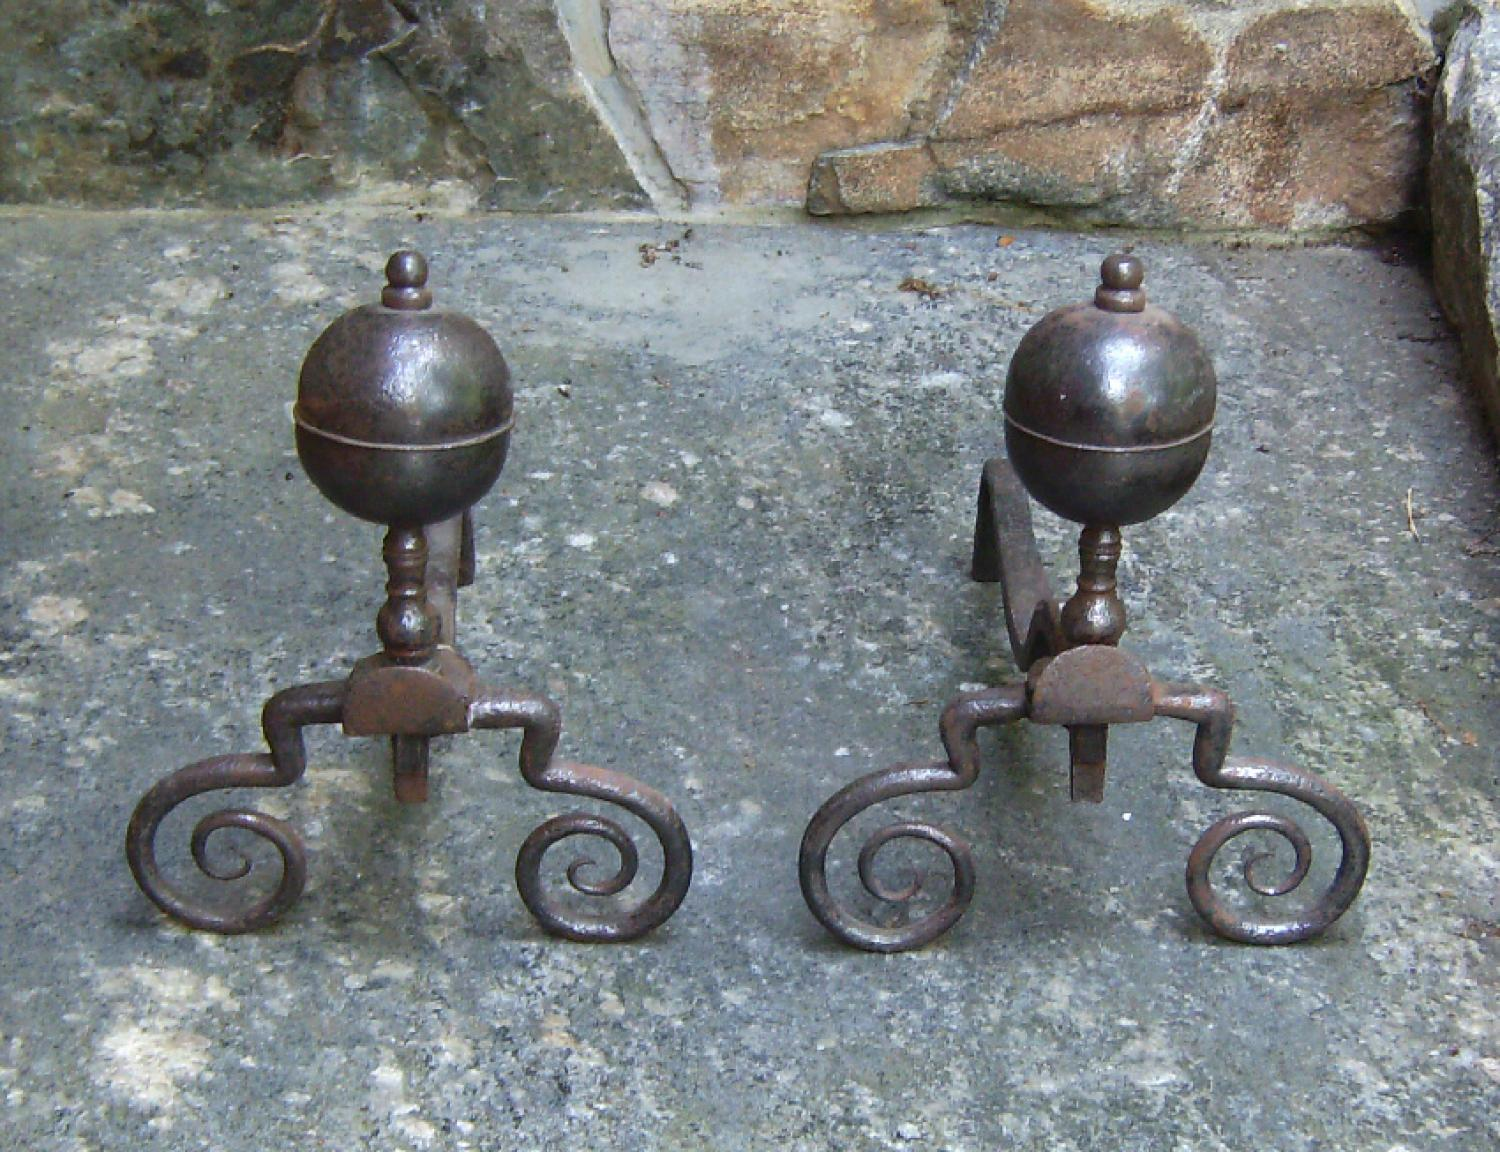 17th century bulbous top hand wrought andirons c1650 to 1690